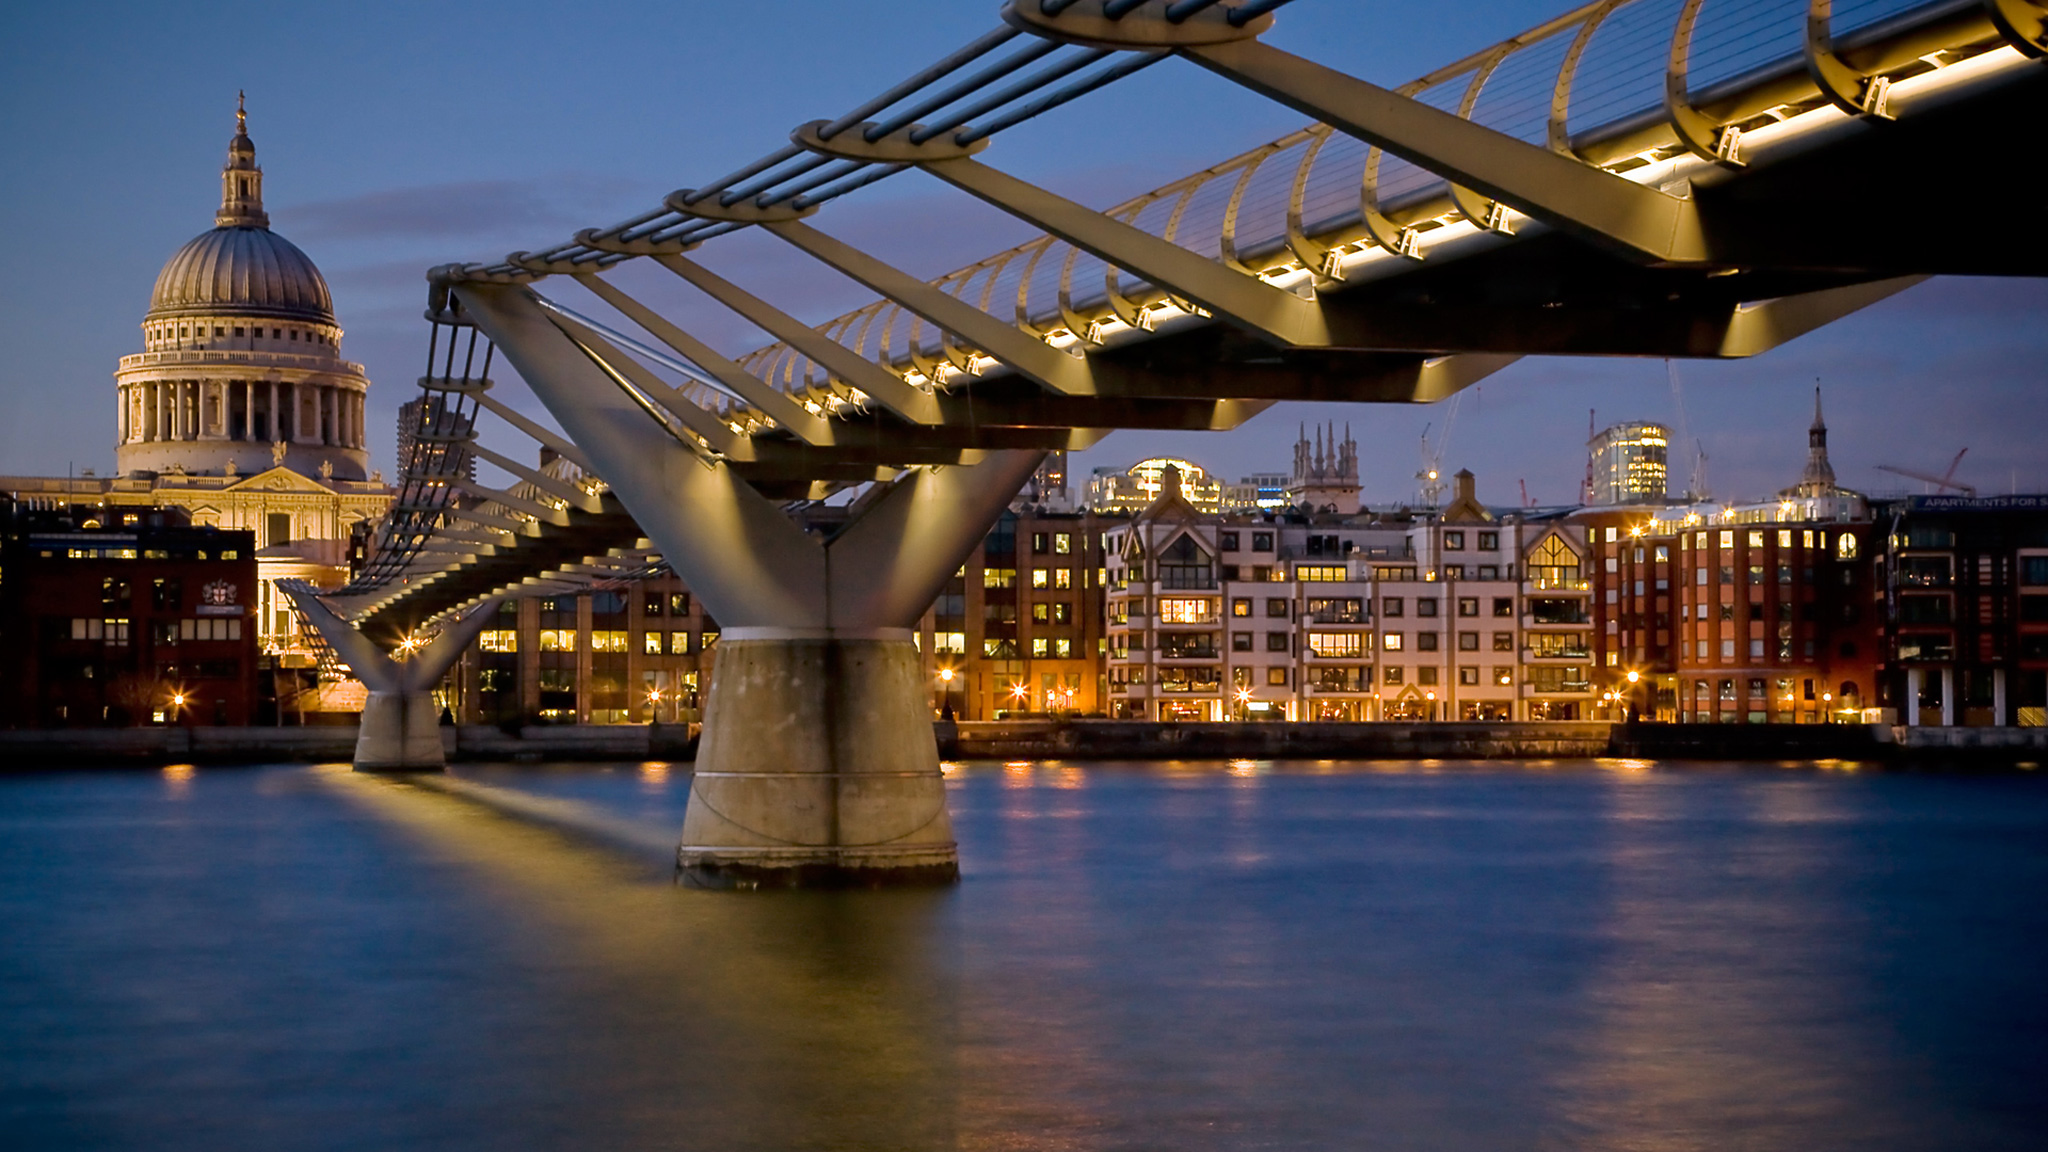 Bridge-In-Night-x-wallpaper-wp3403506